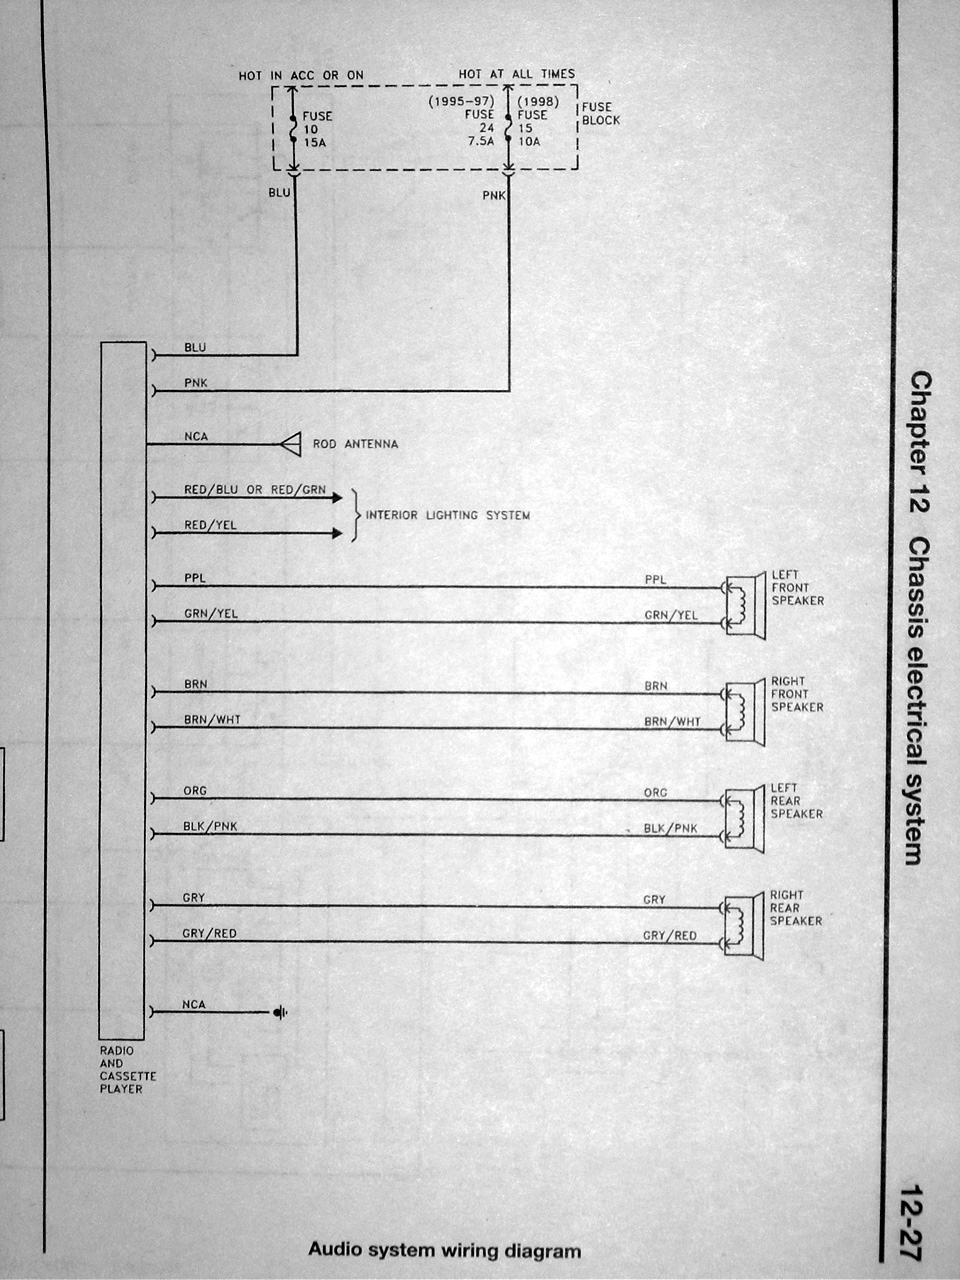 DSC01849 wiring diagram thread *useful info* nissan forum 2000 nissan sentra wiring diagram at readyjetset.co